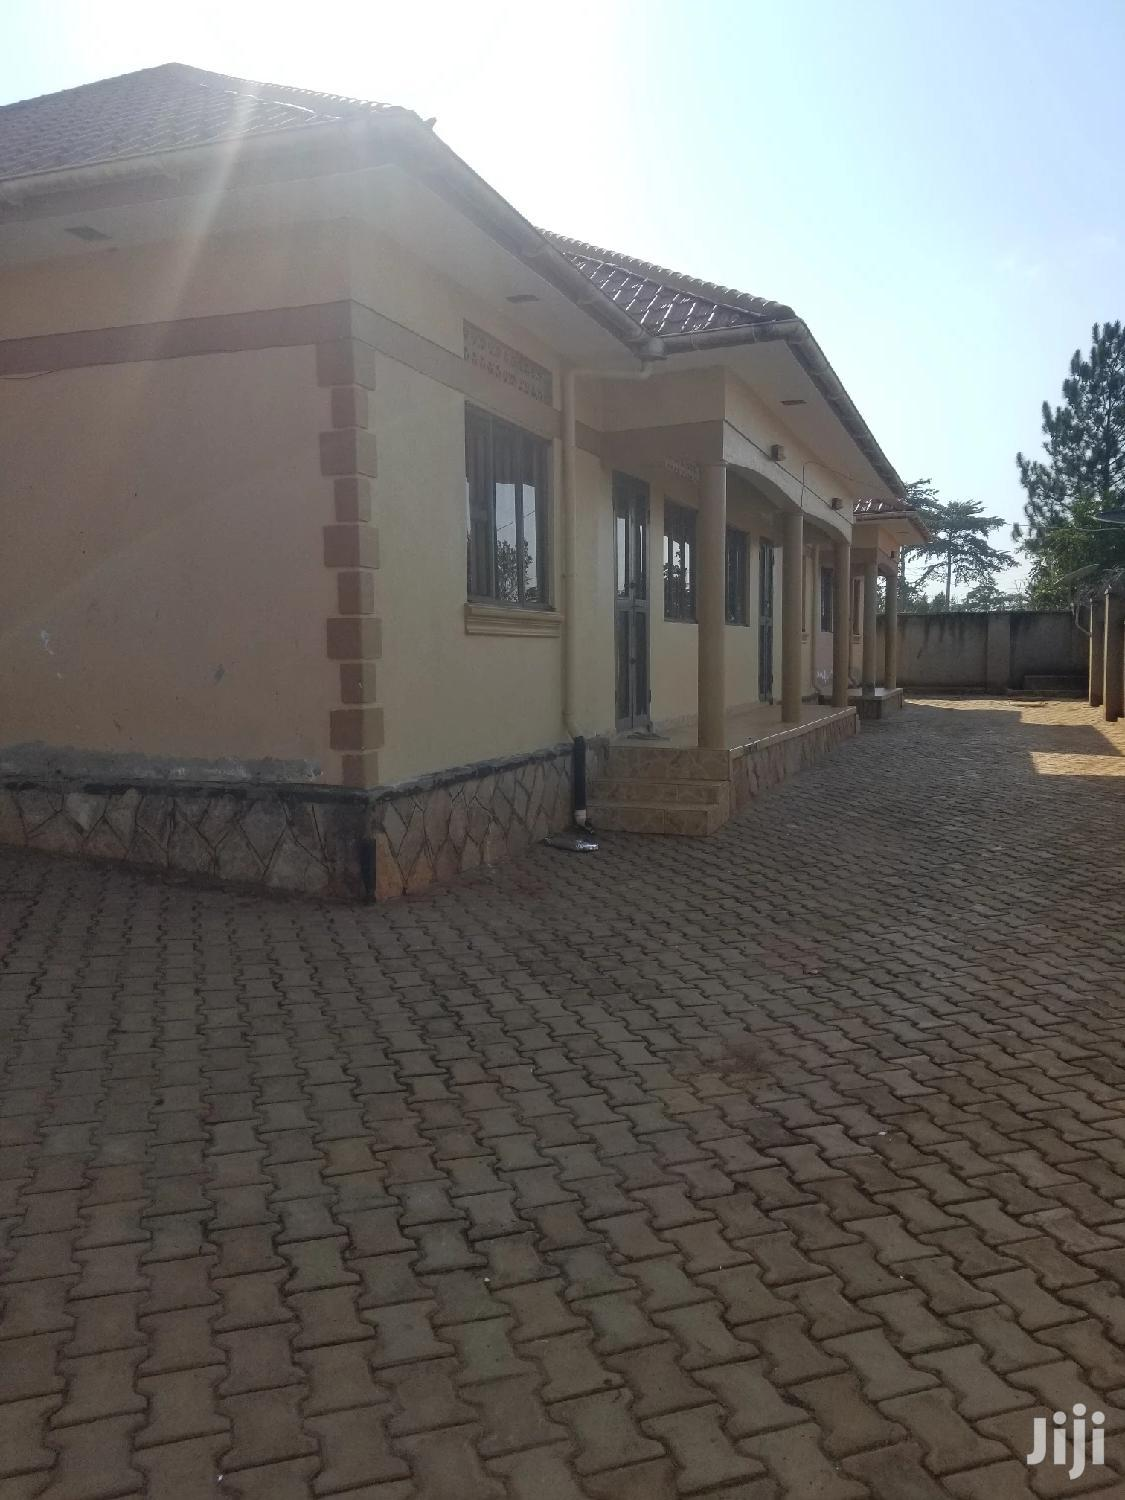 Rentals for Sale Kira With Ready Land Title